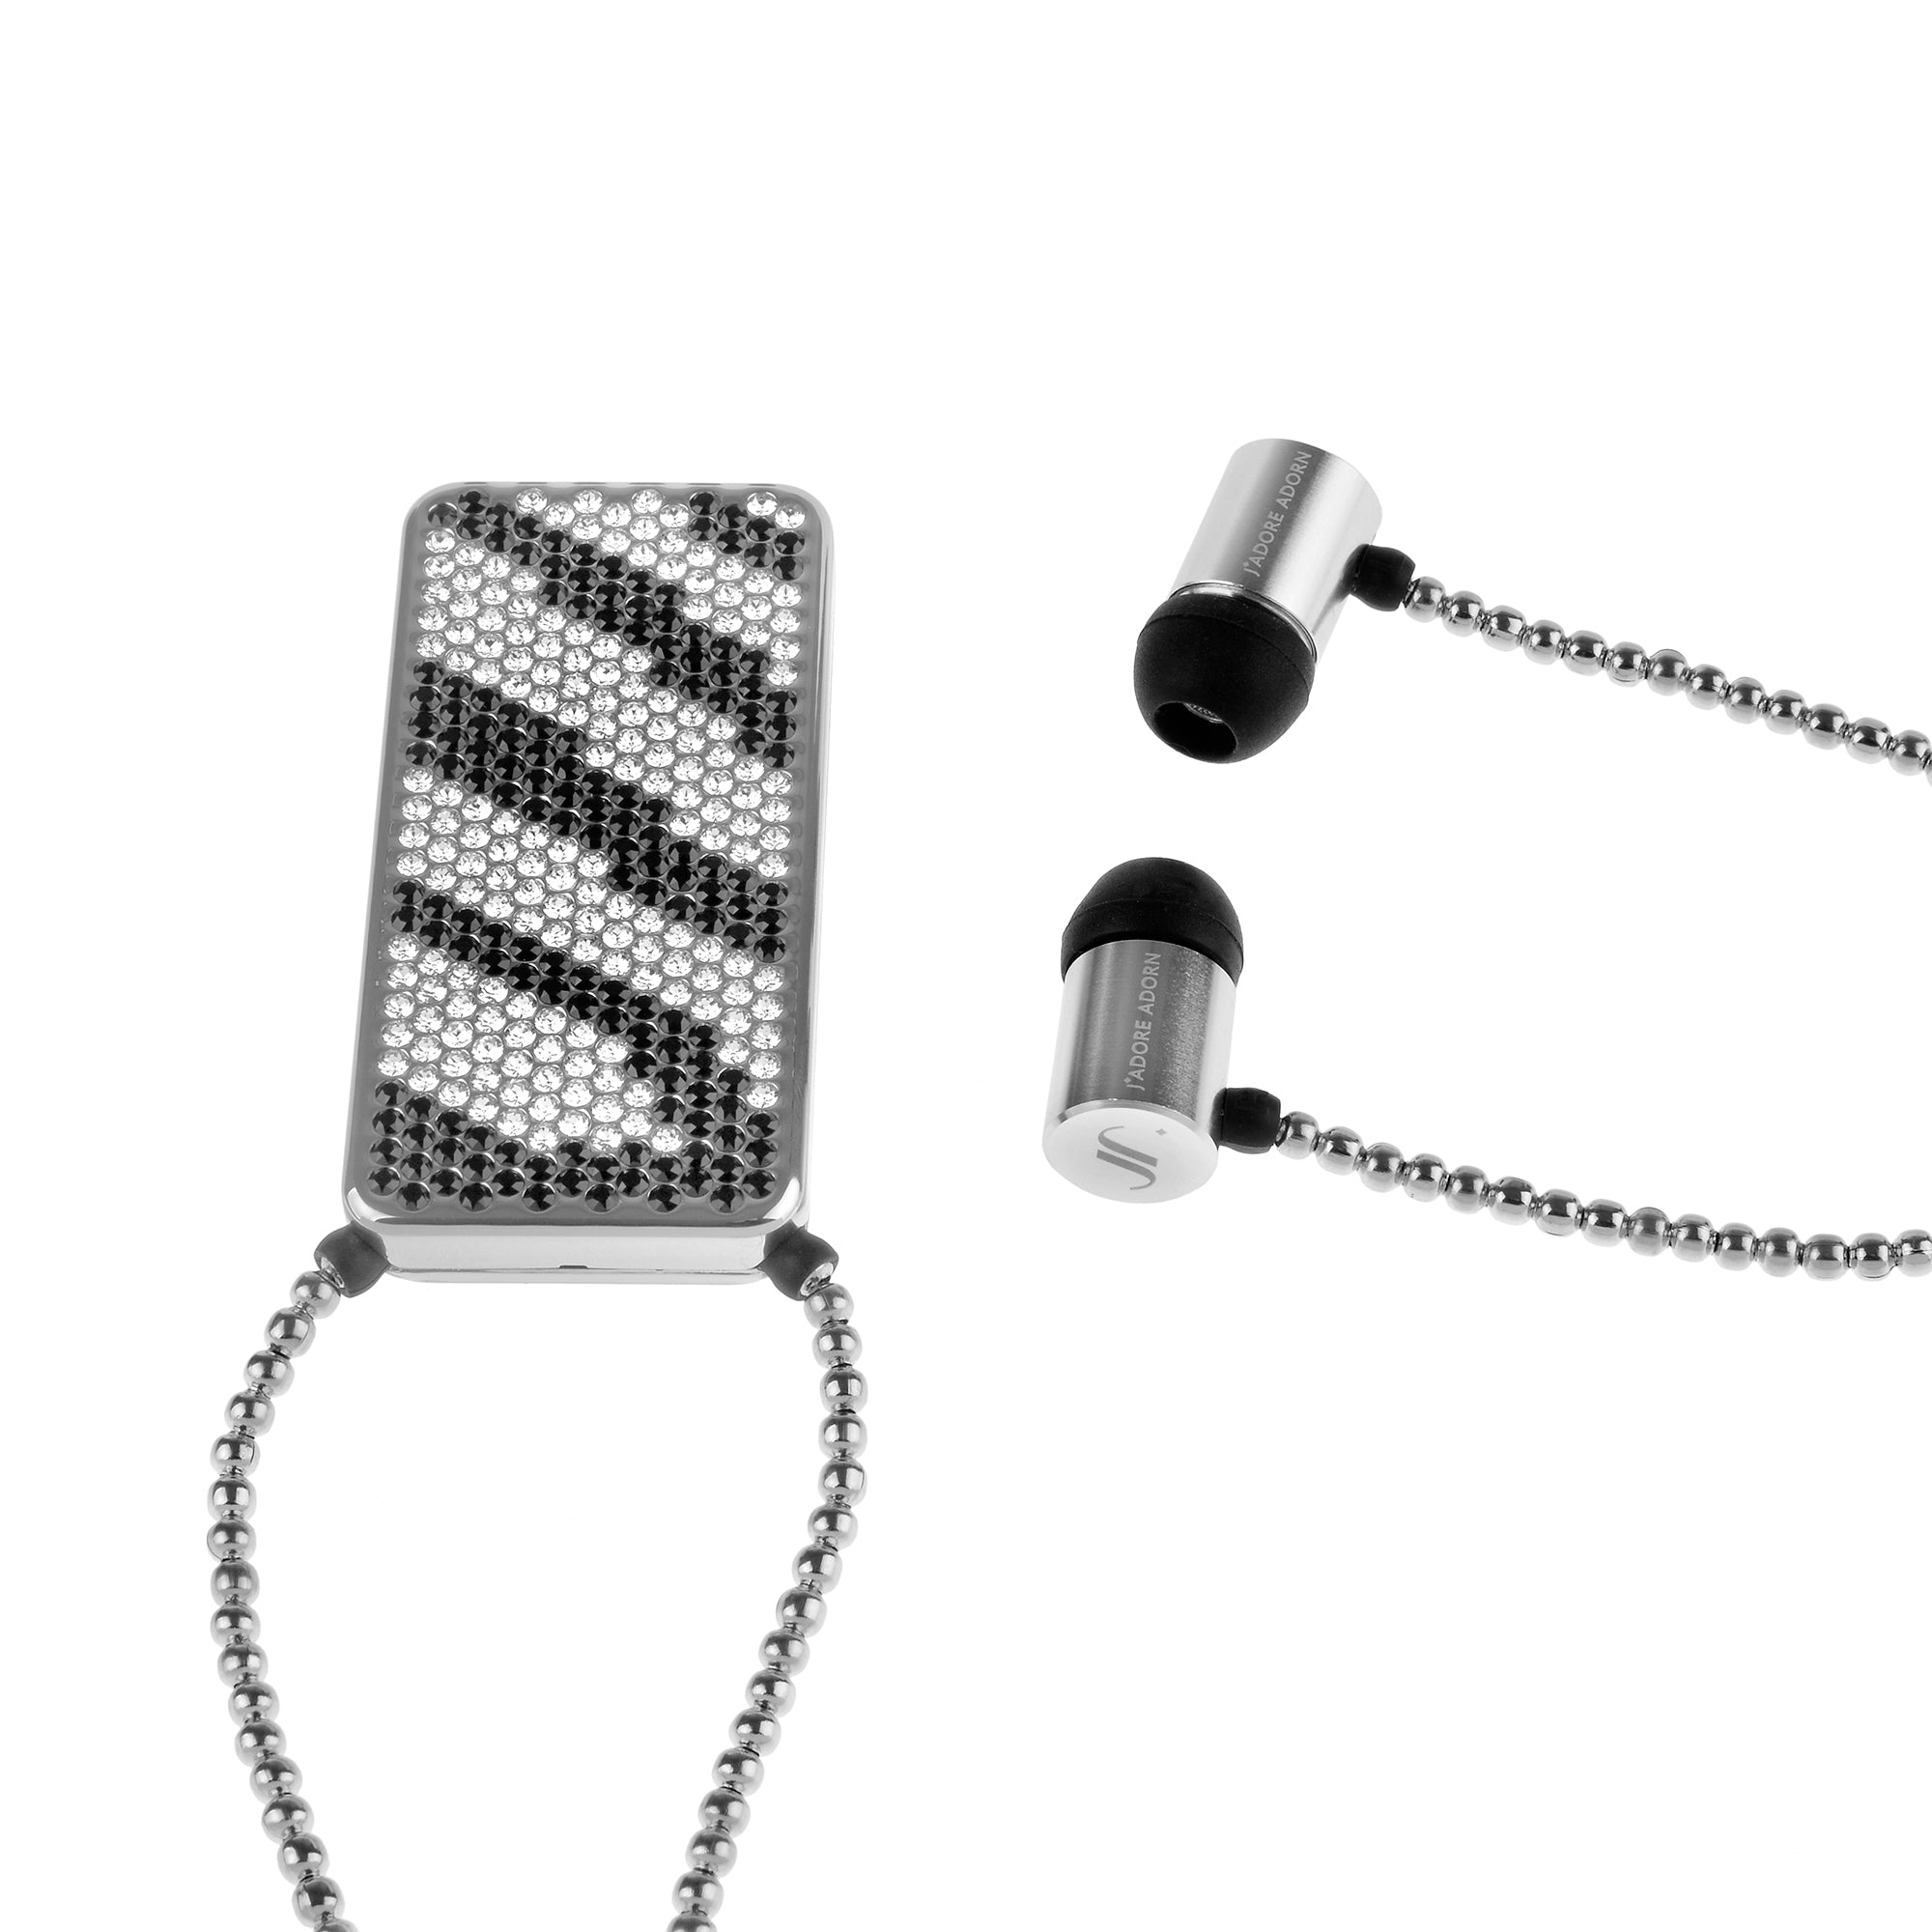 Bluetooth Necklace Earphones - Zebra